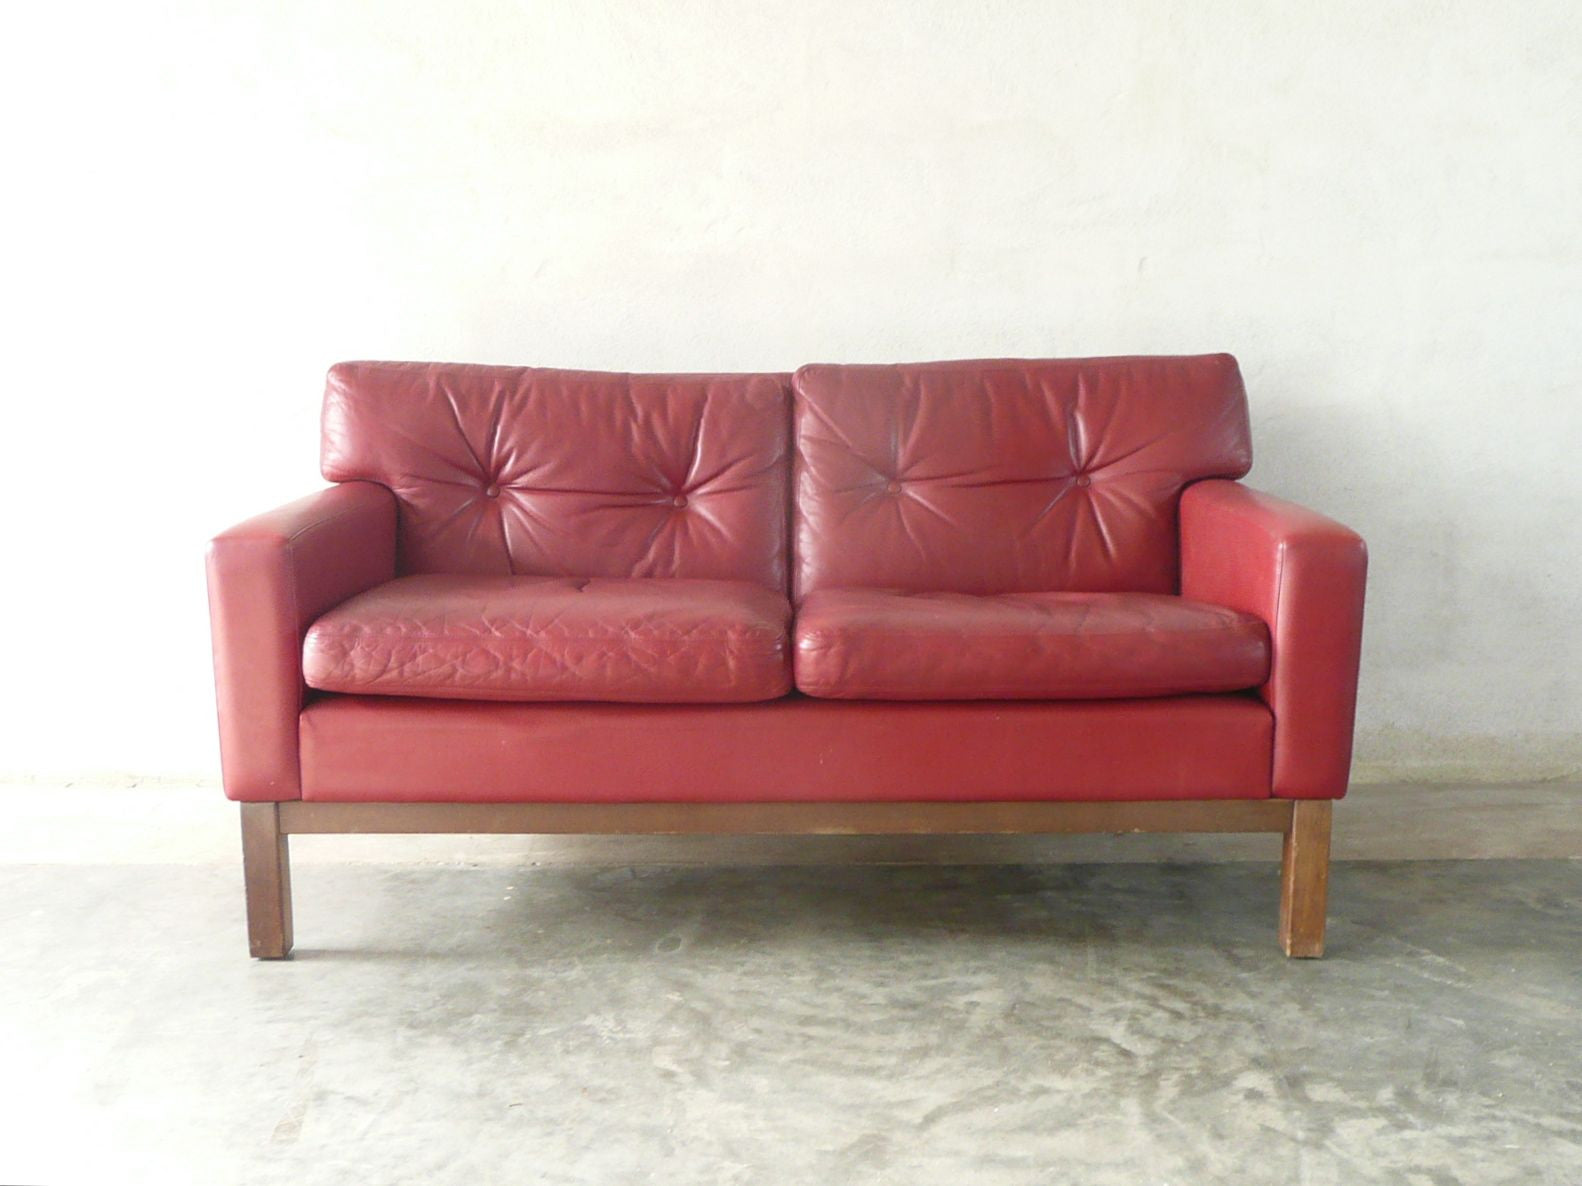 New price: Finnish two seat leather sofa